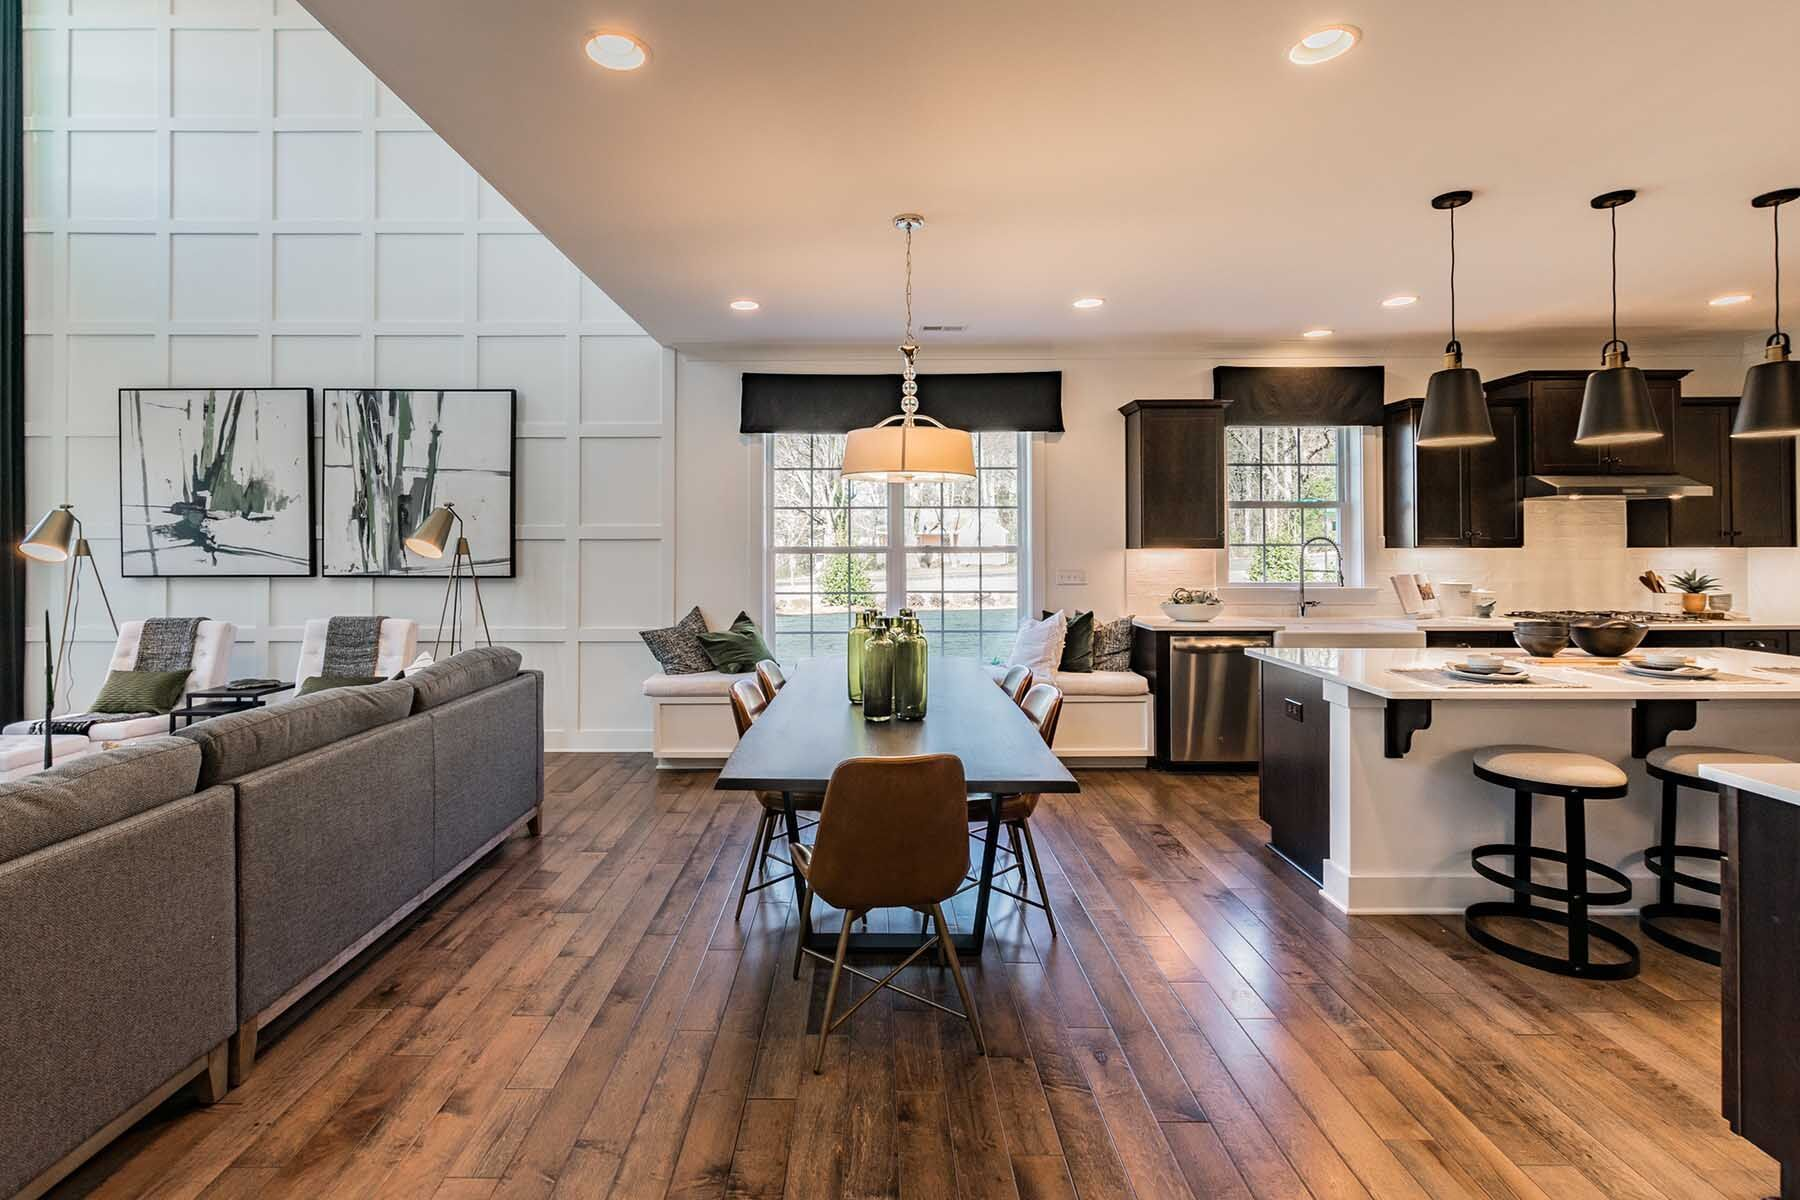 Kitchen featured in the Torrance II By M/I Homes in Charlotte, NC